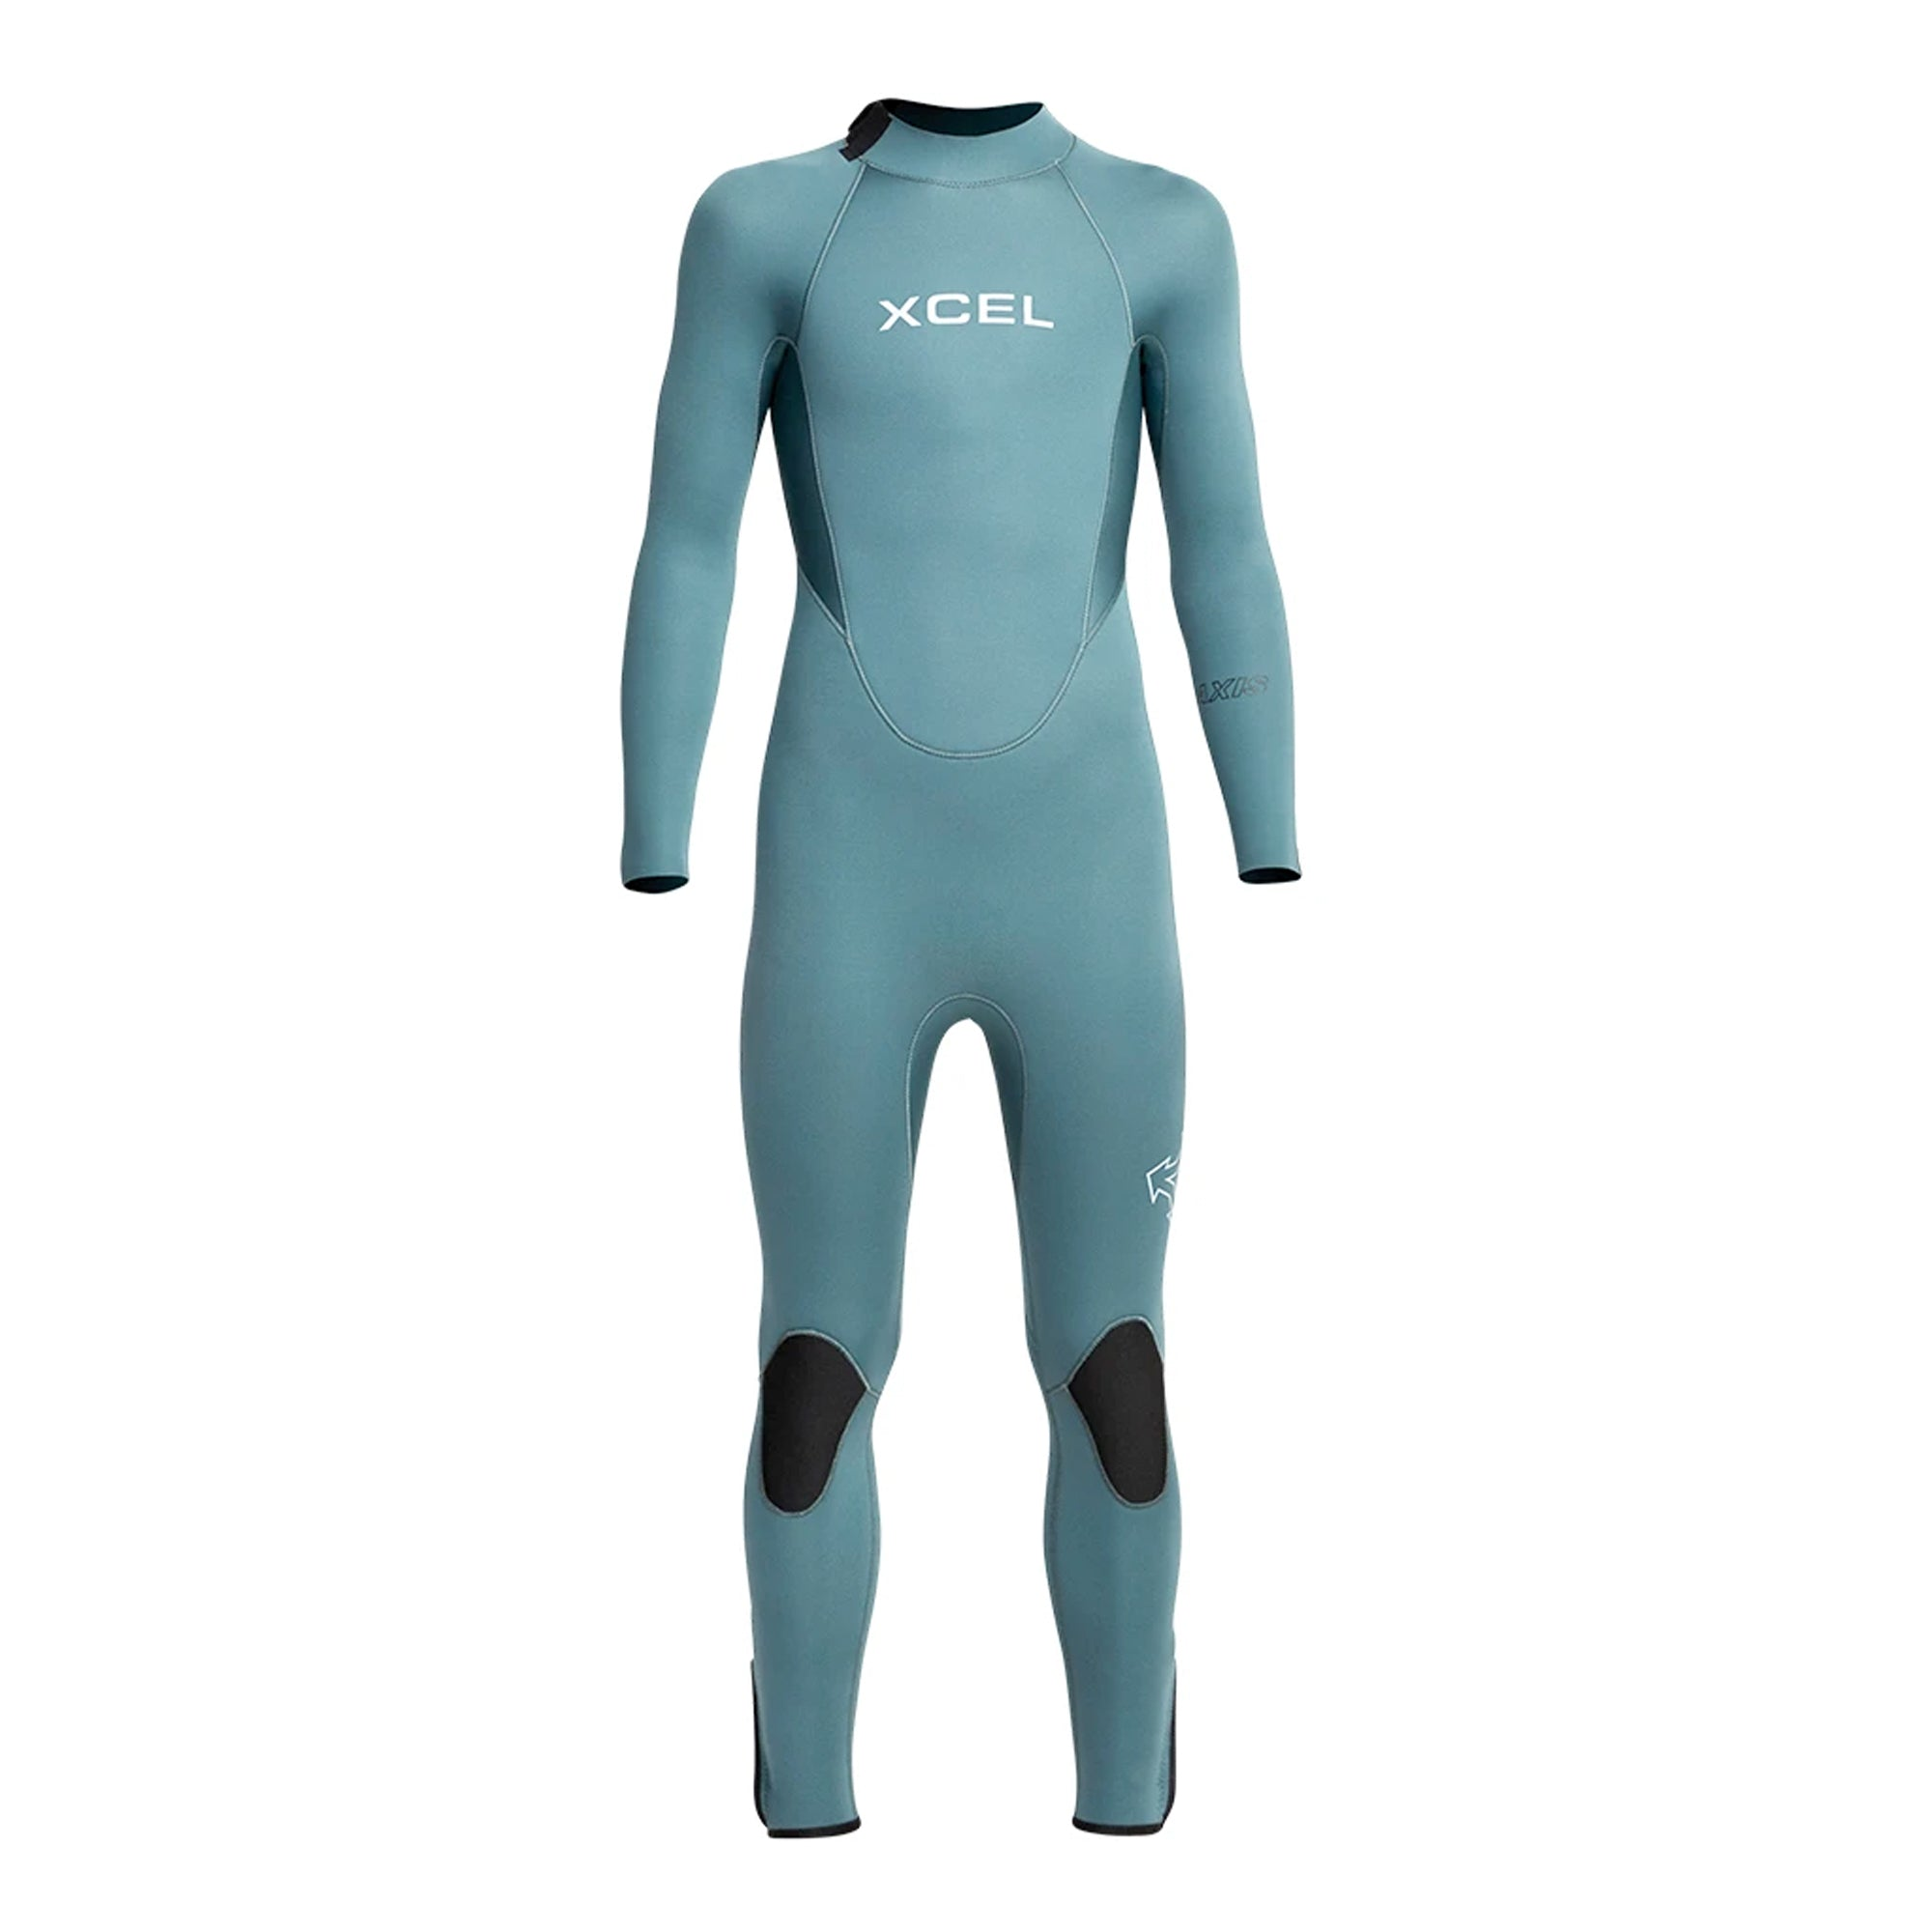 Xcel Axis 3/2mm Youth Back-Zip Fullsuit Wetsuit